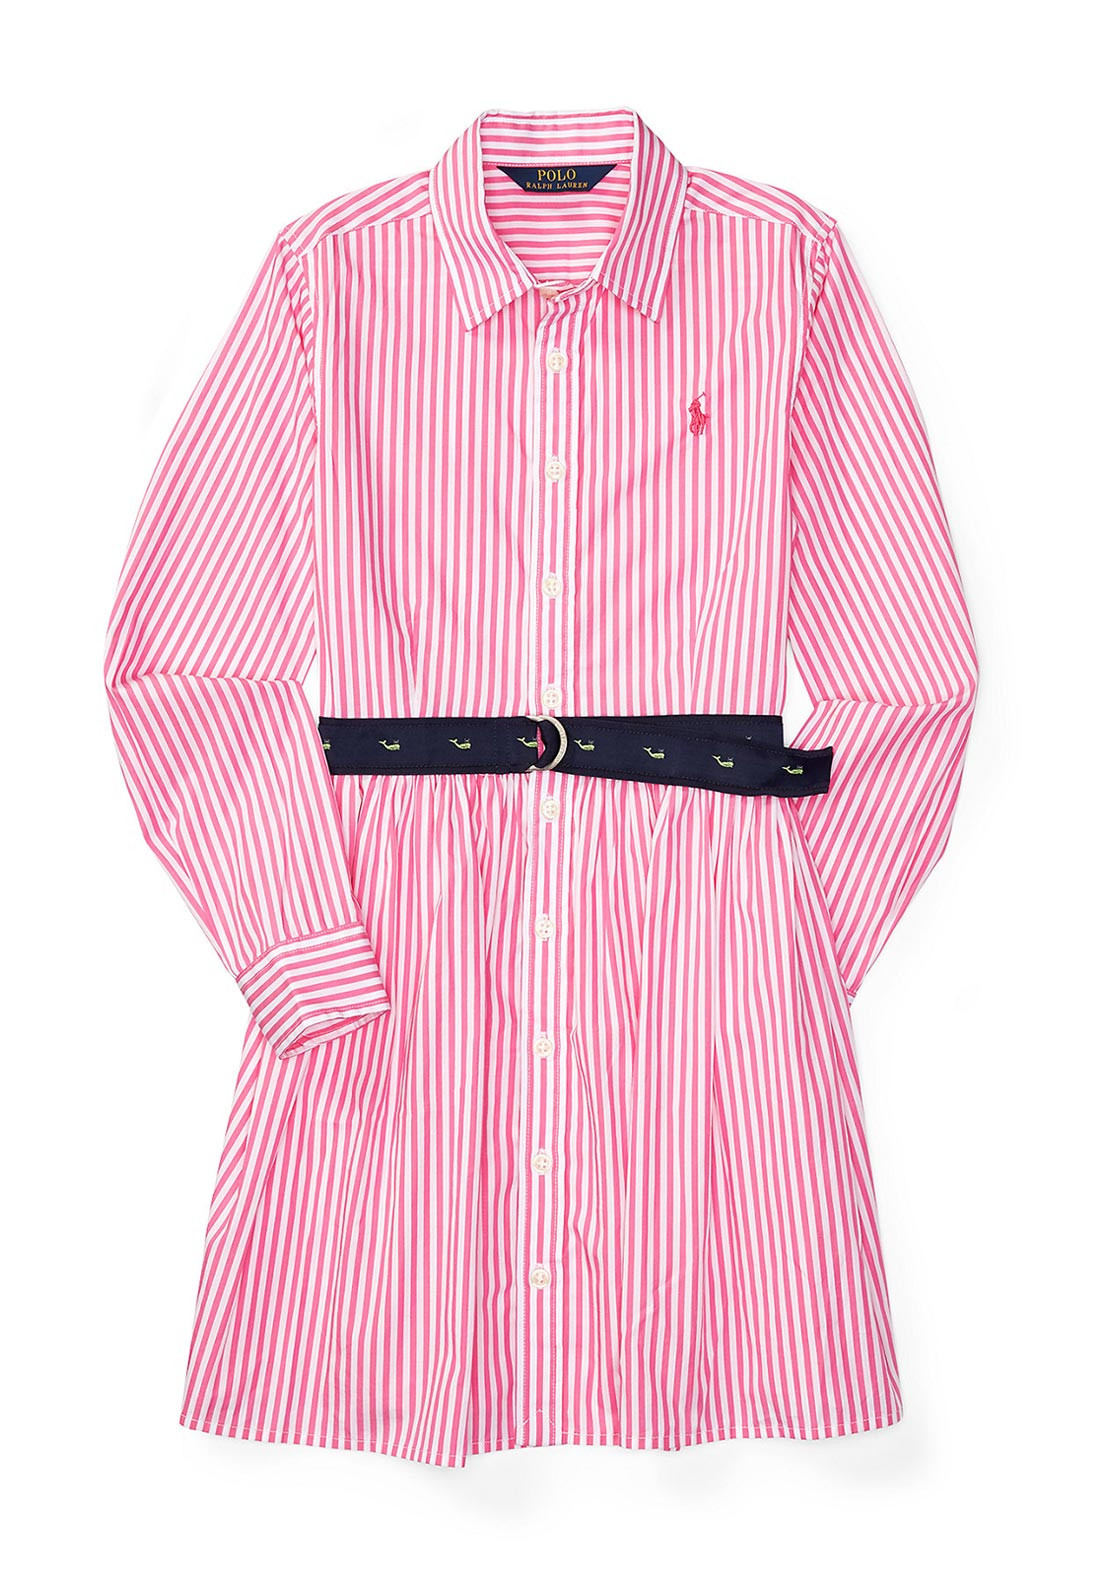 girls ralph lauren shirt